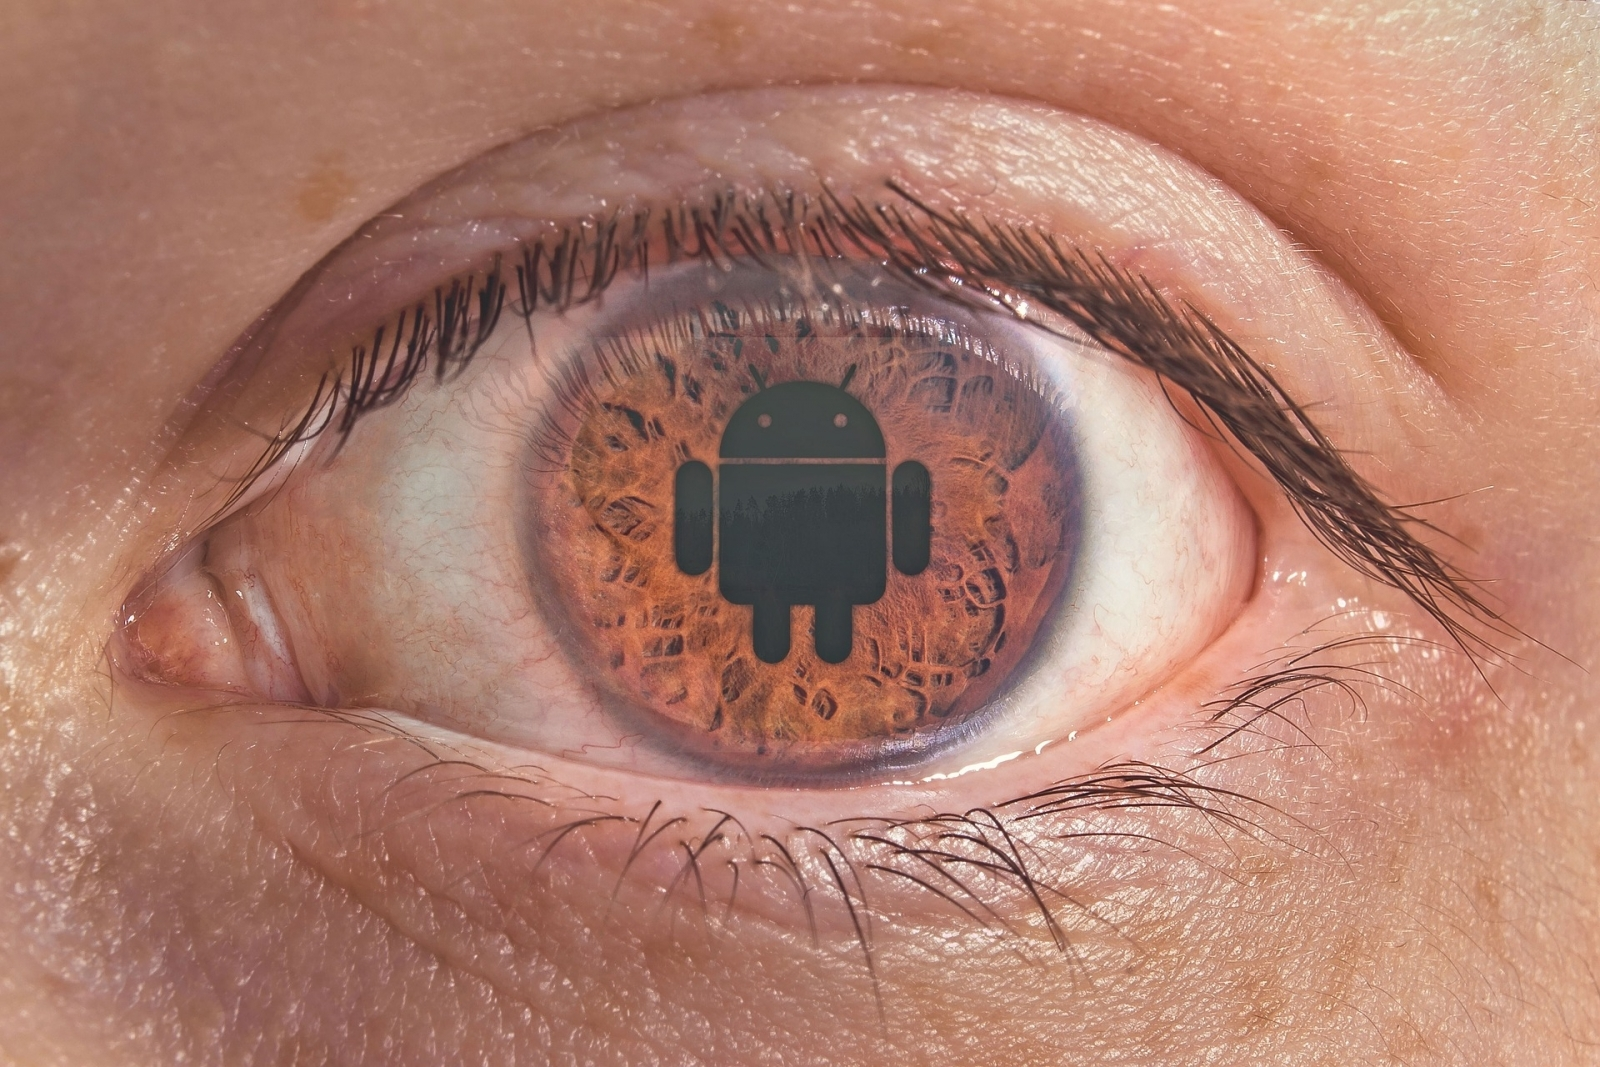 Researchers identify Android malware that can 'spy extensively'